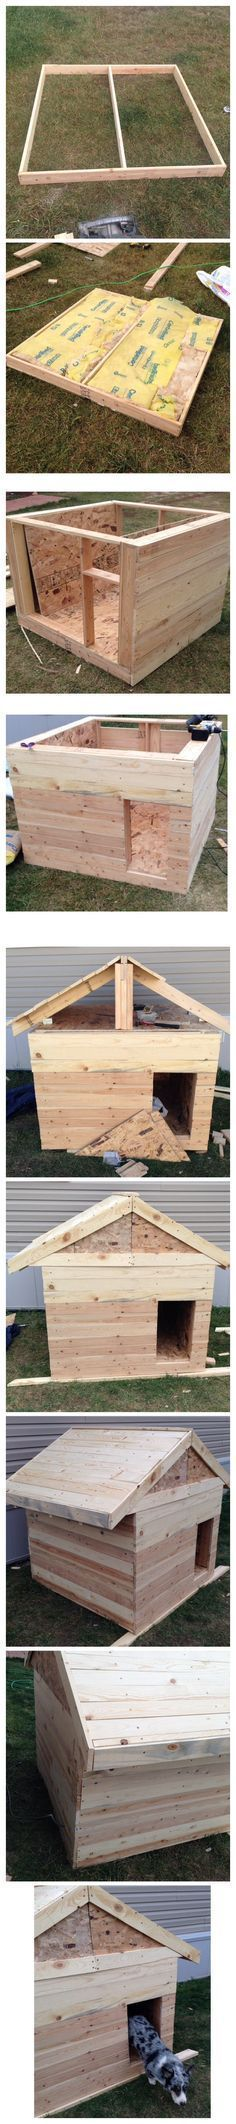 1000 Ideas About Insulated Dog Houses On Pinterest Dog